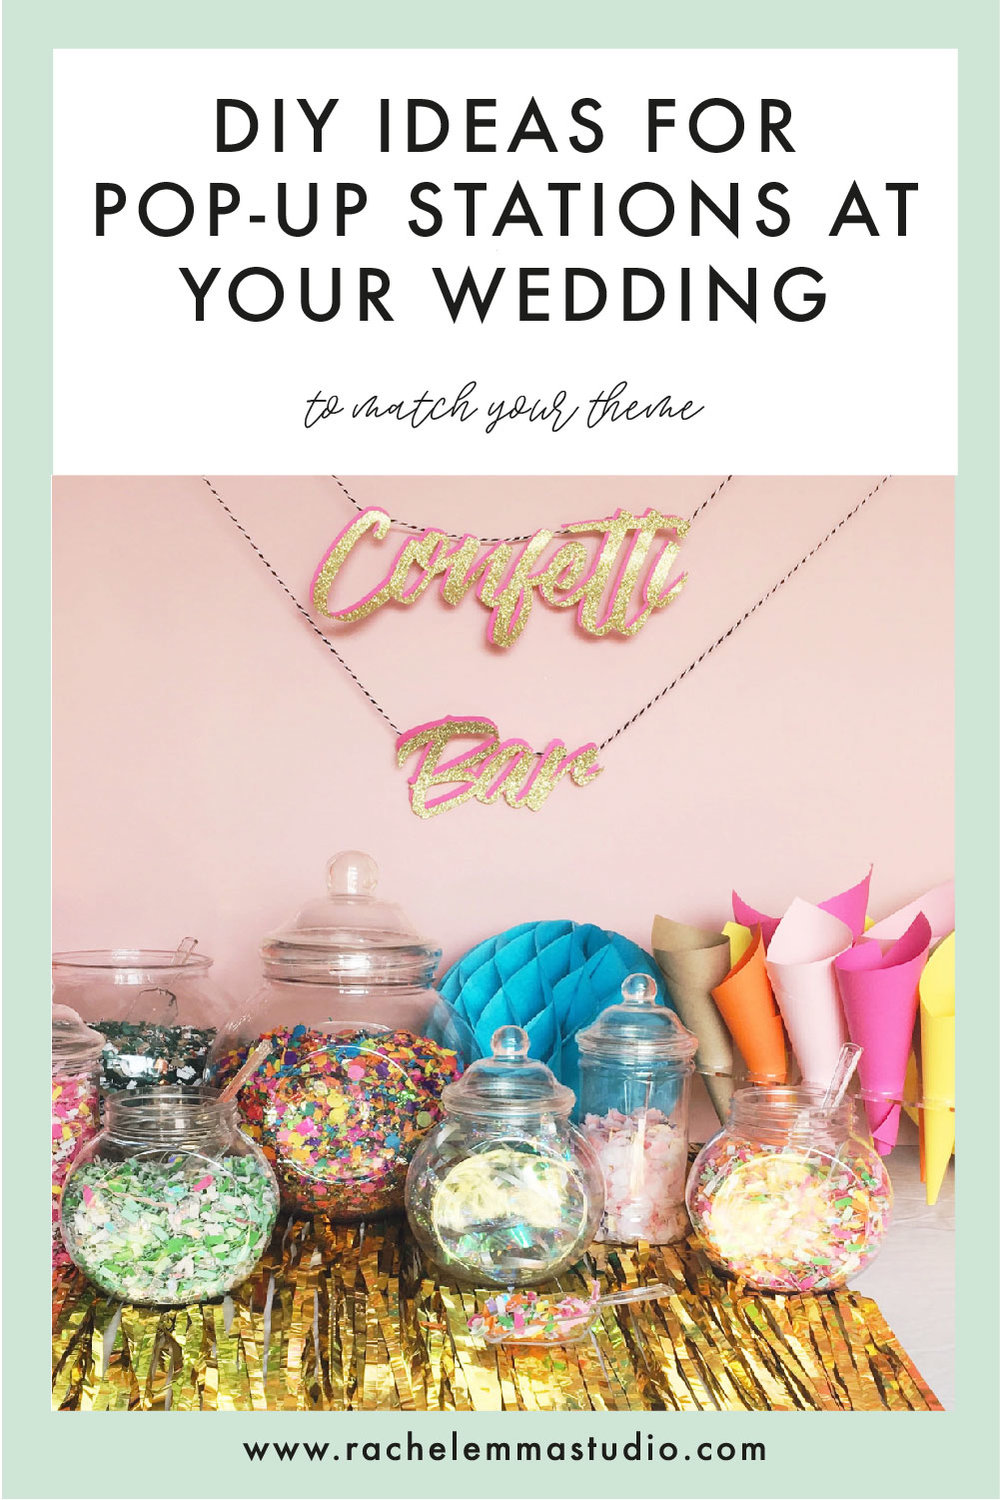 DIY ideas for pop up stations at your wedding-11.jpg